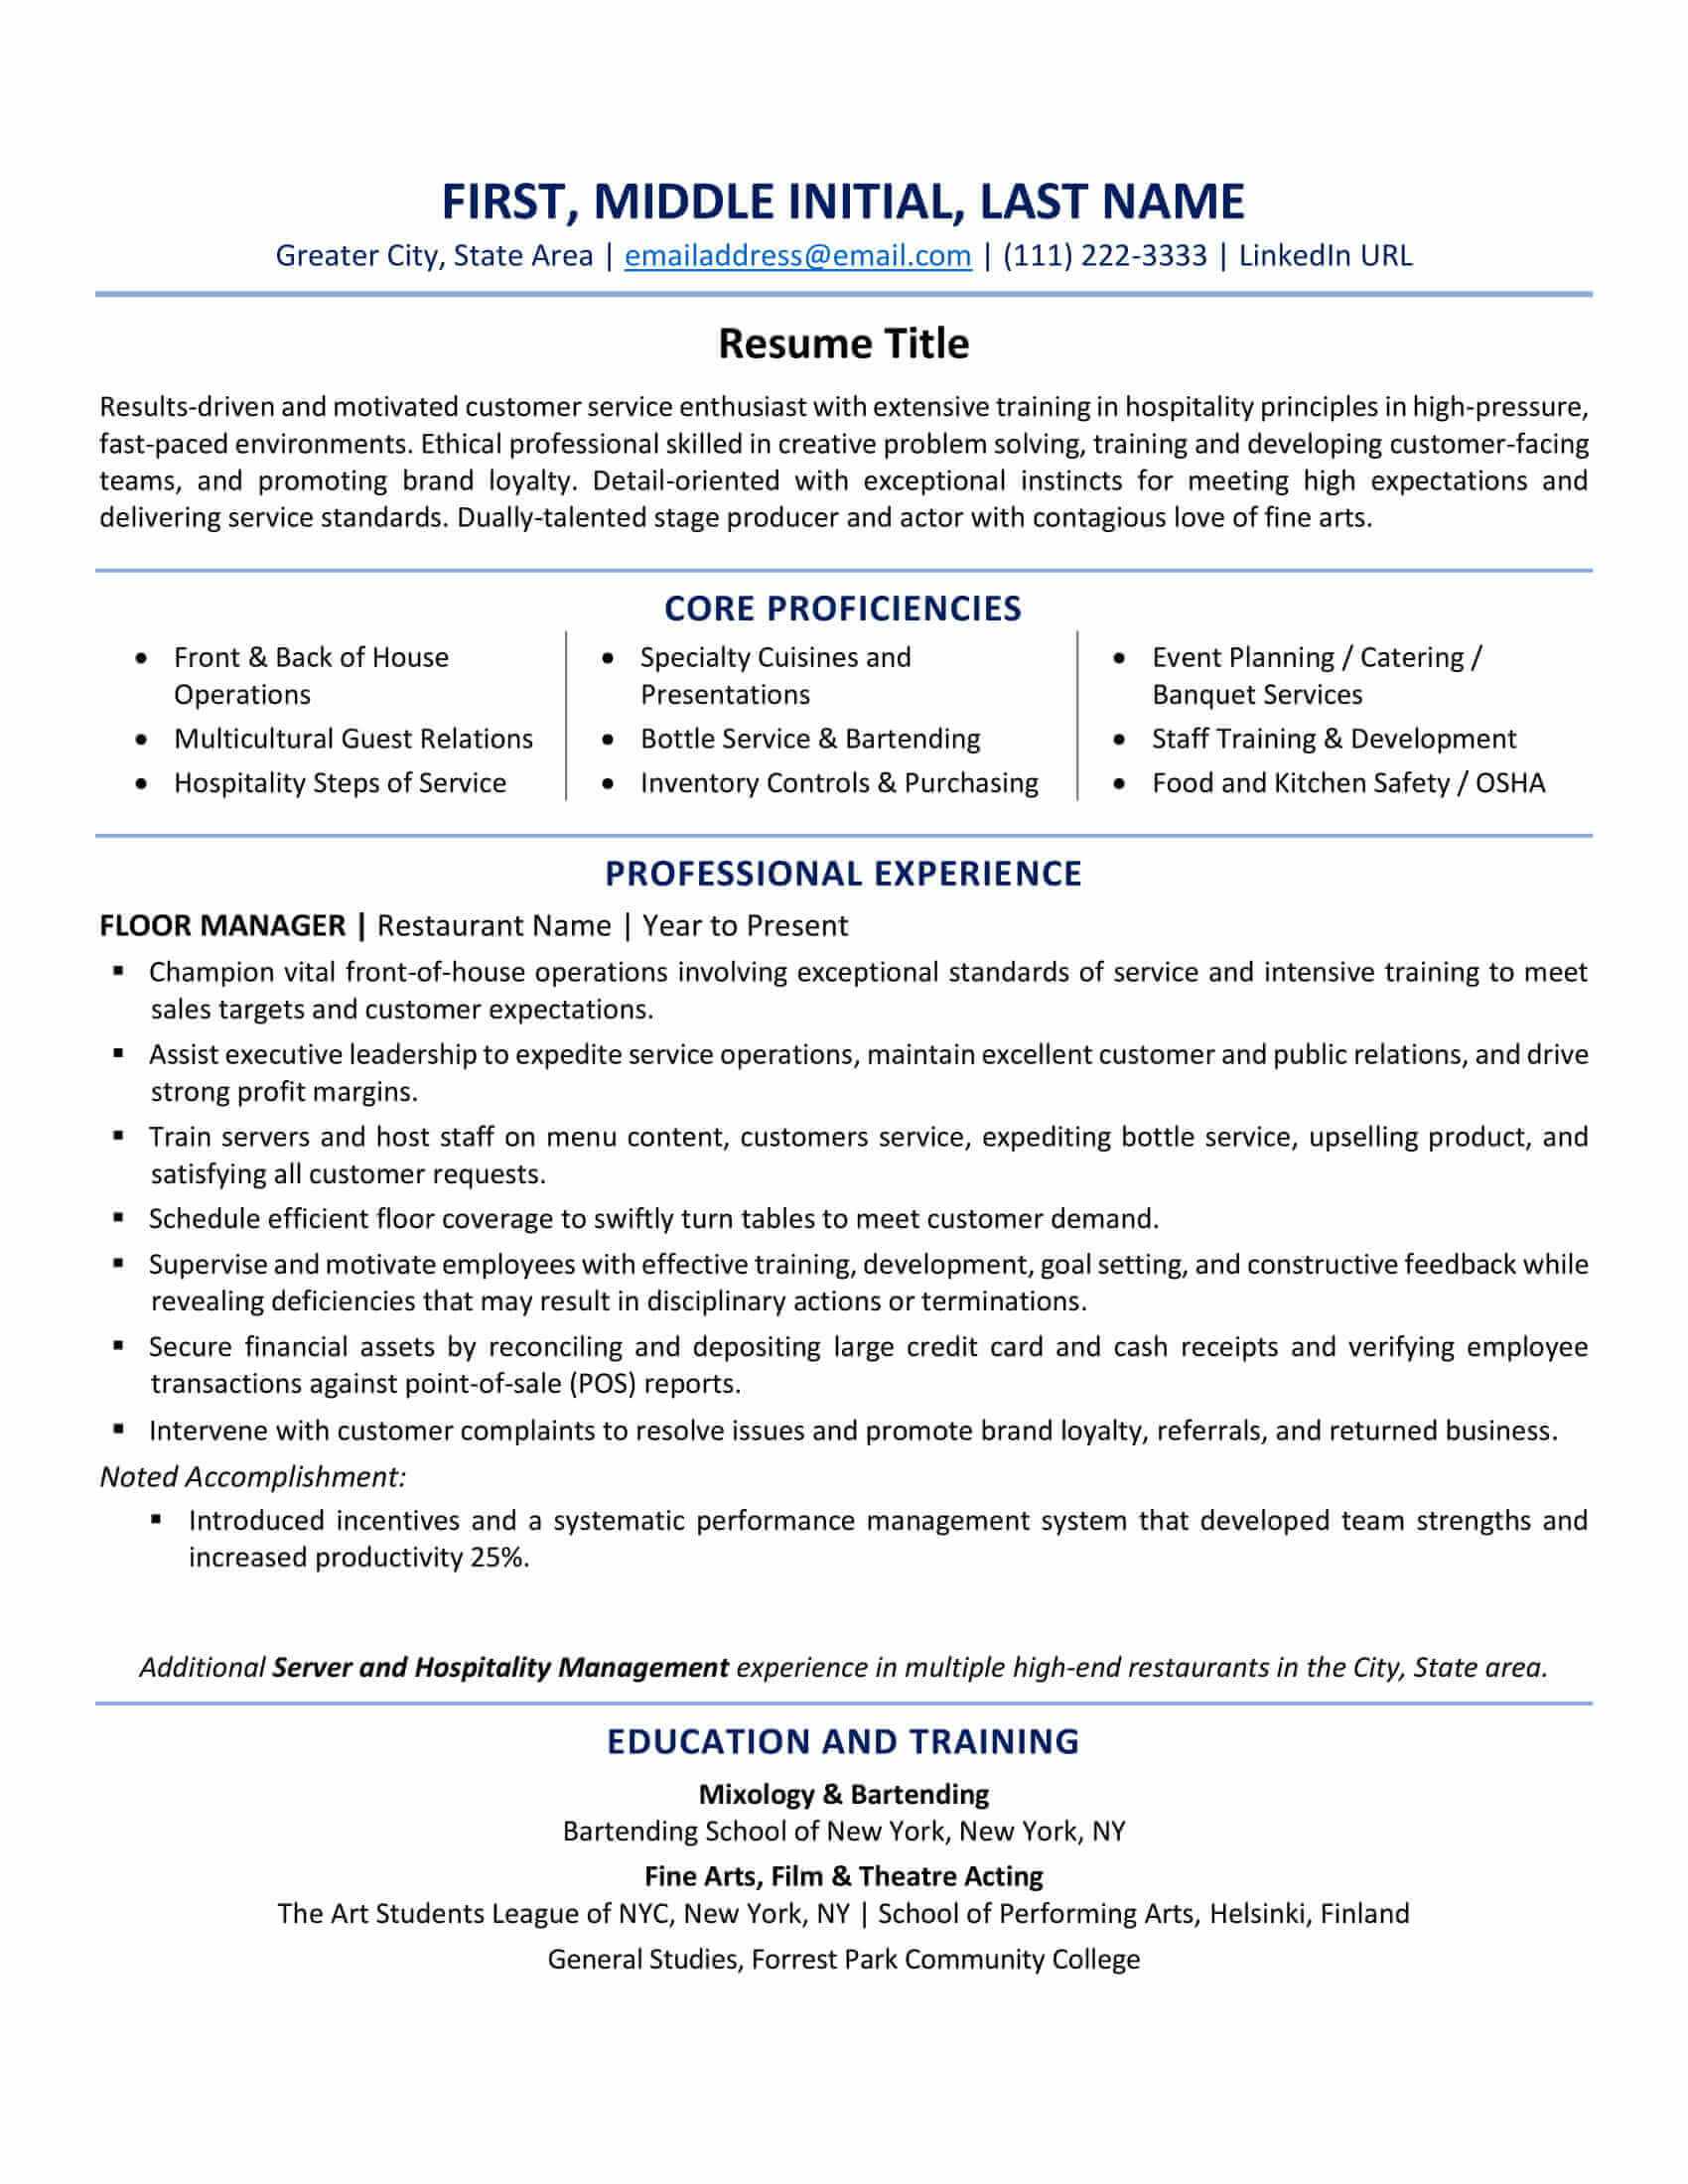 ats resume test free checker formatting examples format friendly when moving to the us Resume Resume Format Ats Friendly